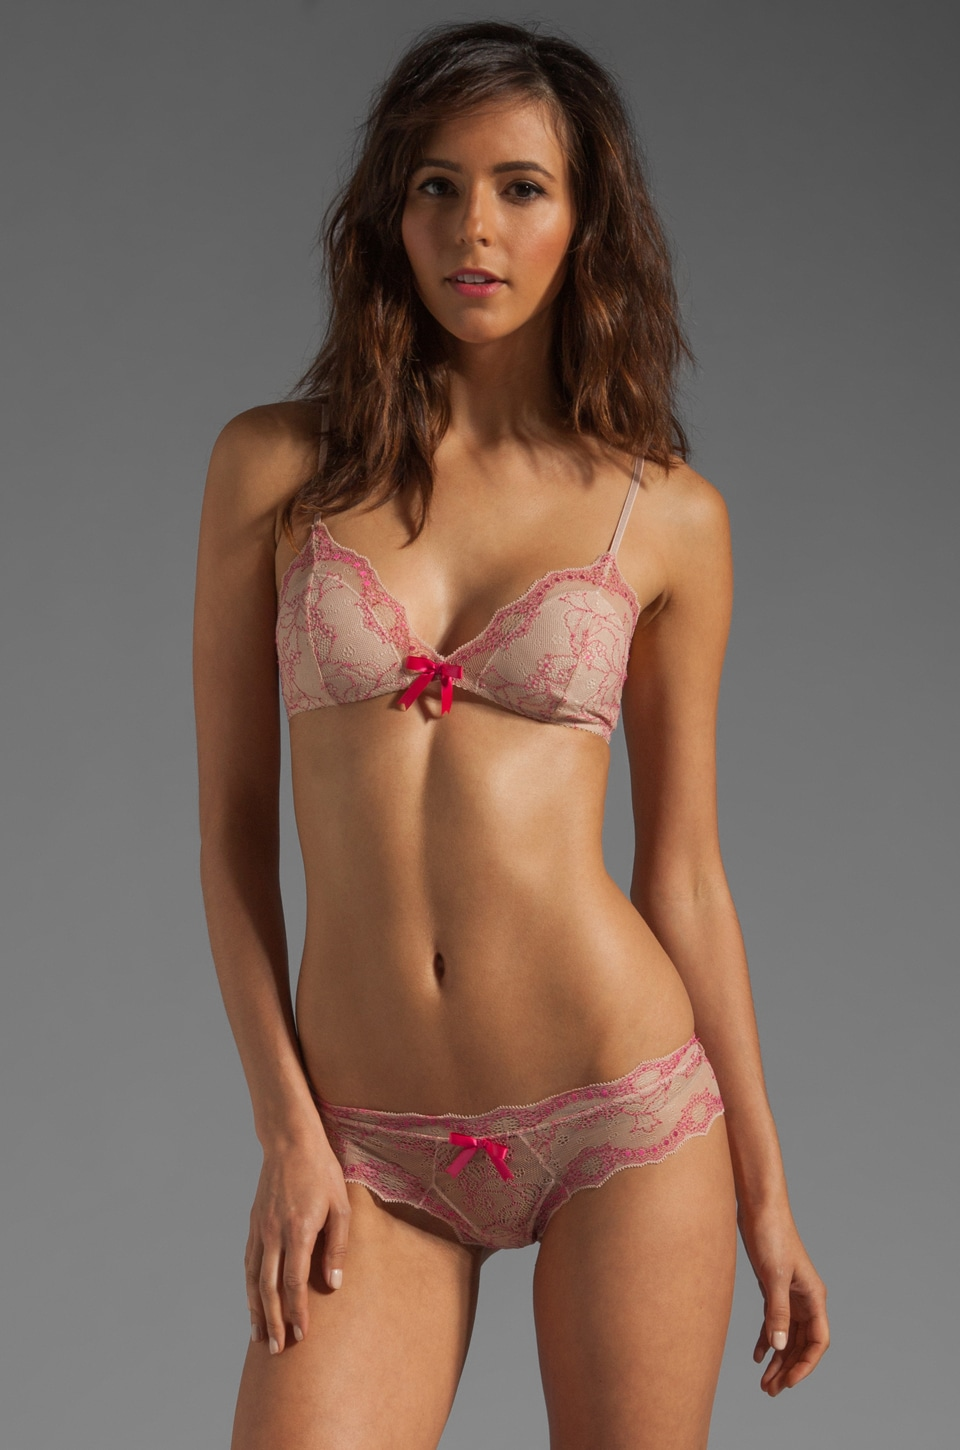 eberjey Orianna Bralet in Nude/Very Berry